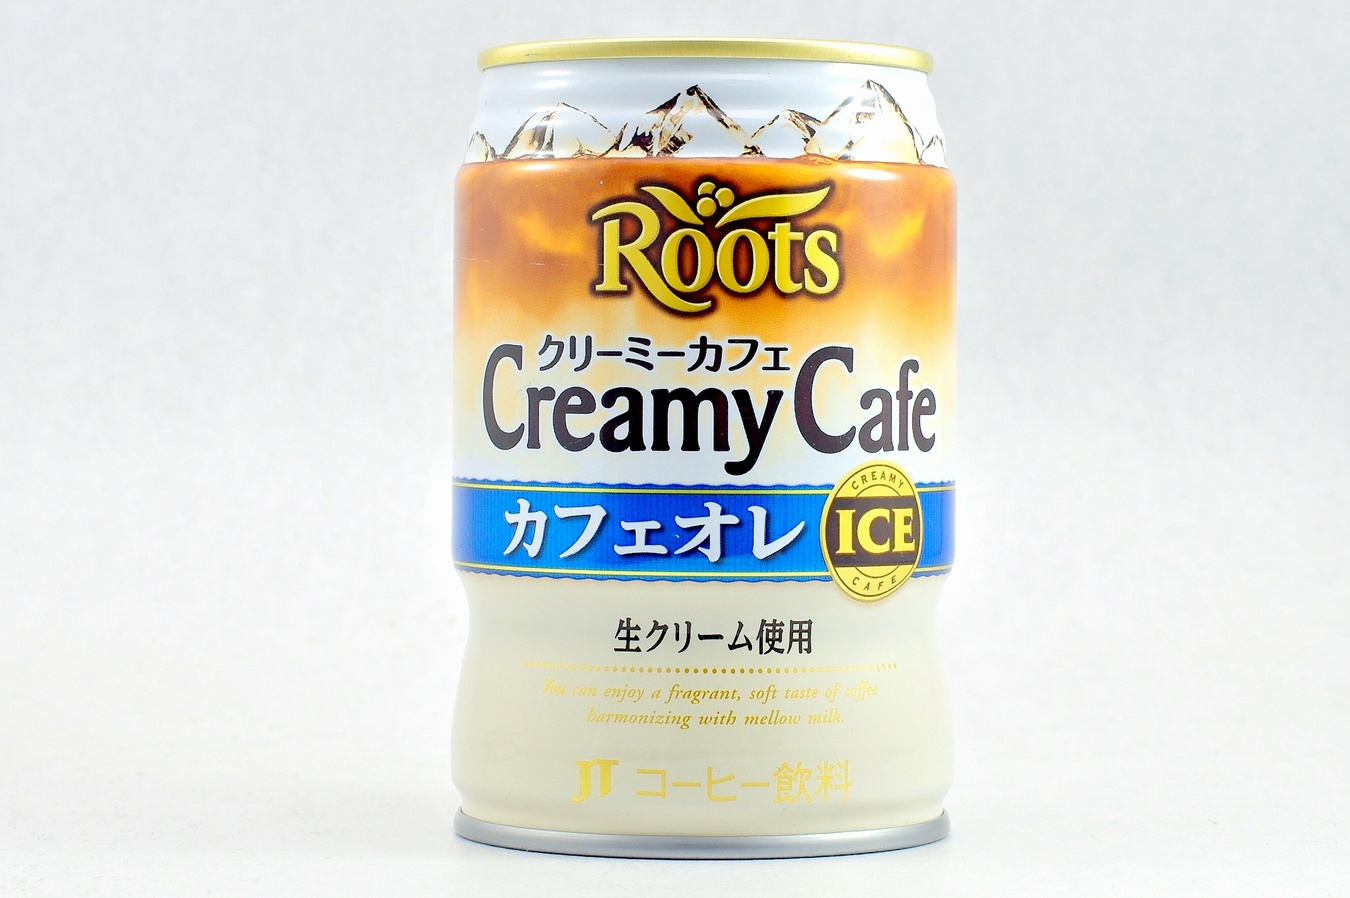 Roots クリーミーカフェアイス 2015年3月